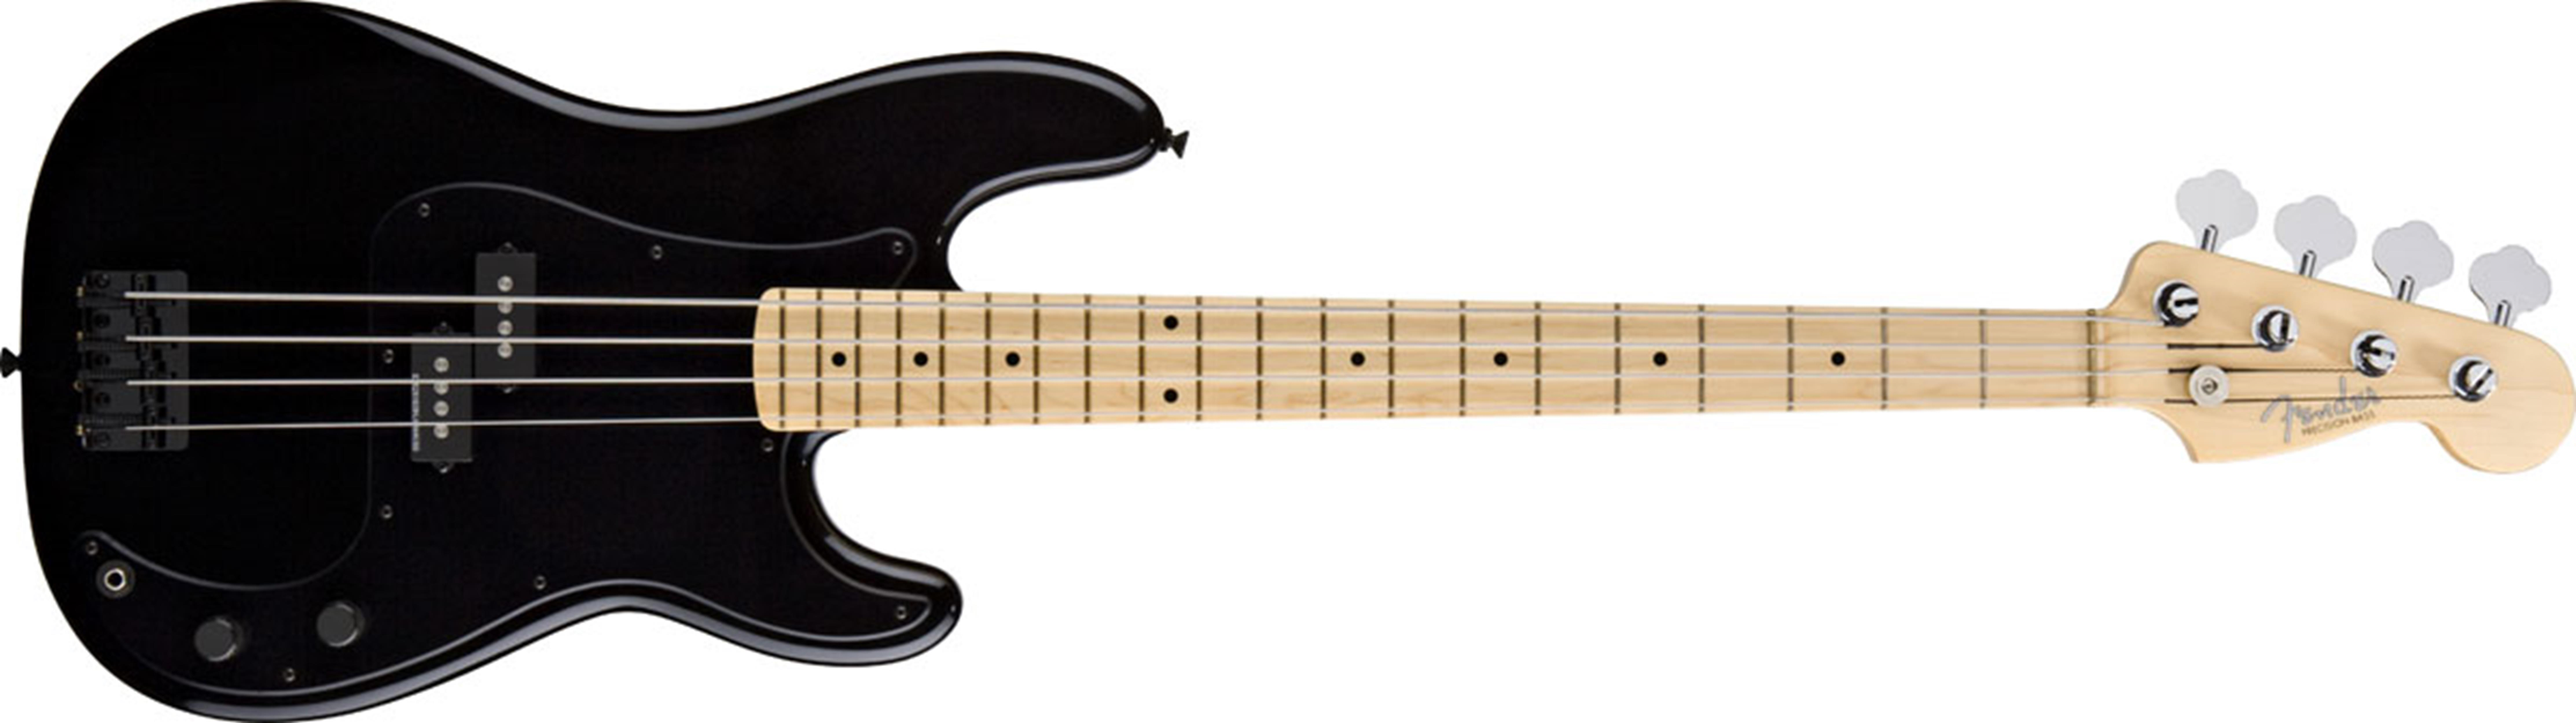 FENDER ROGER WATERS PRECISION BASS BLACK 0147000306